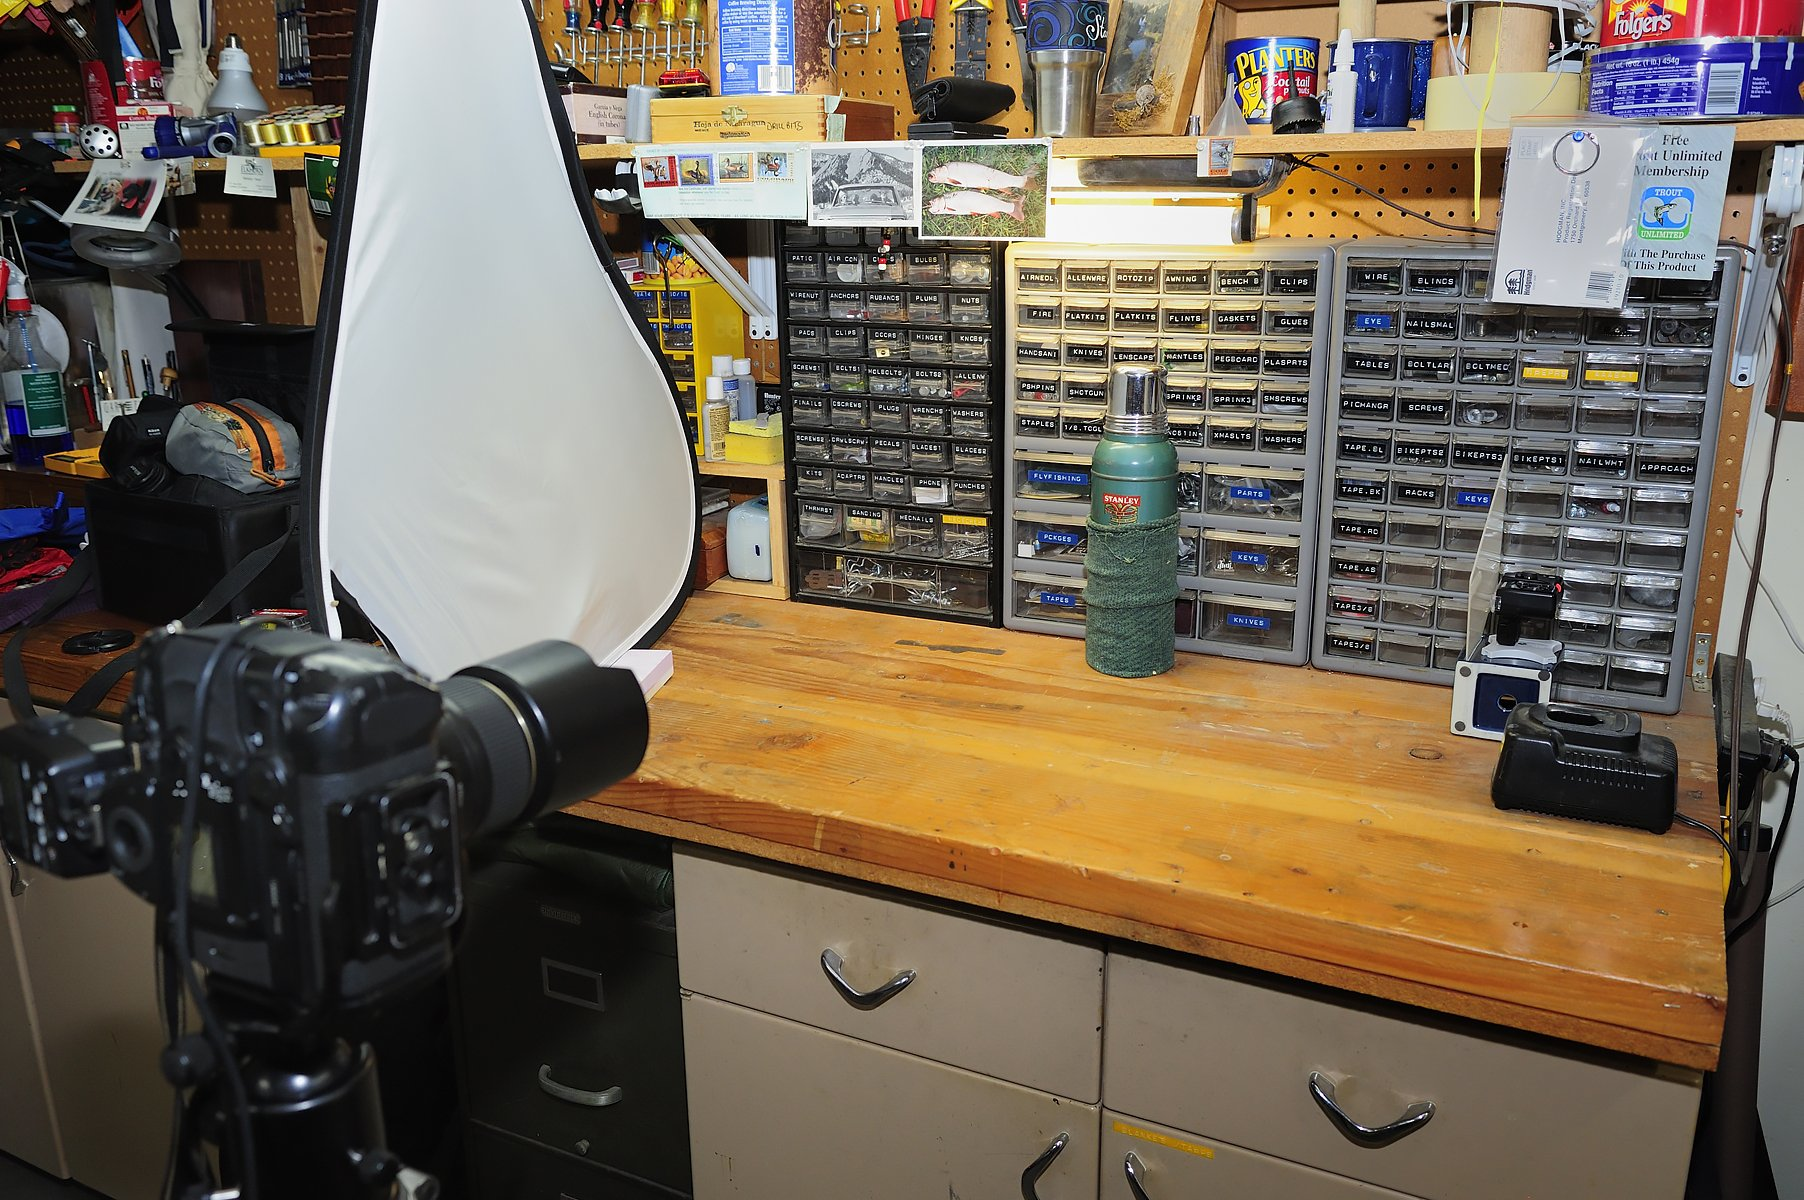 The setup: The F6 with the Nikon SU-800 Commander head mounted in the hot shoe; the Nikon SB-800 Speed Light (at left behind the diffusion panel) and the Nikon SU-R200 Speed Light at right with the white diffusion panel in front of it.